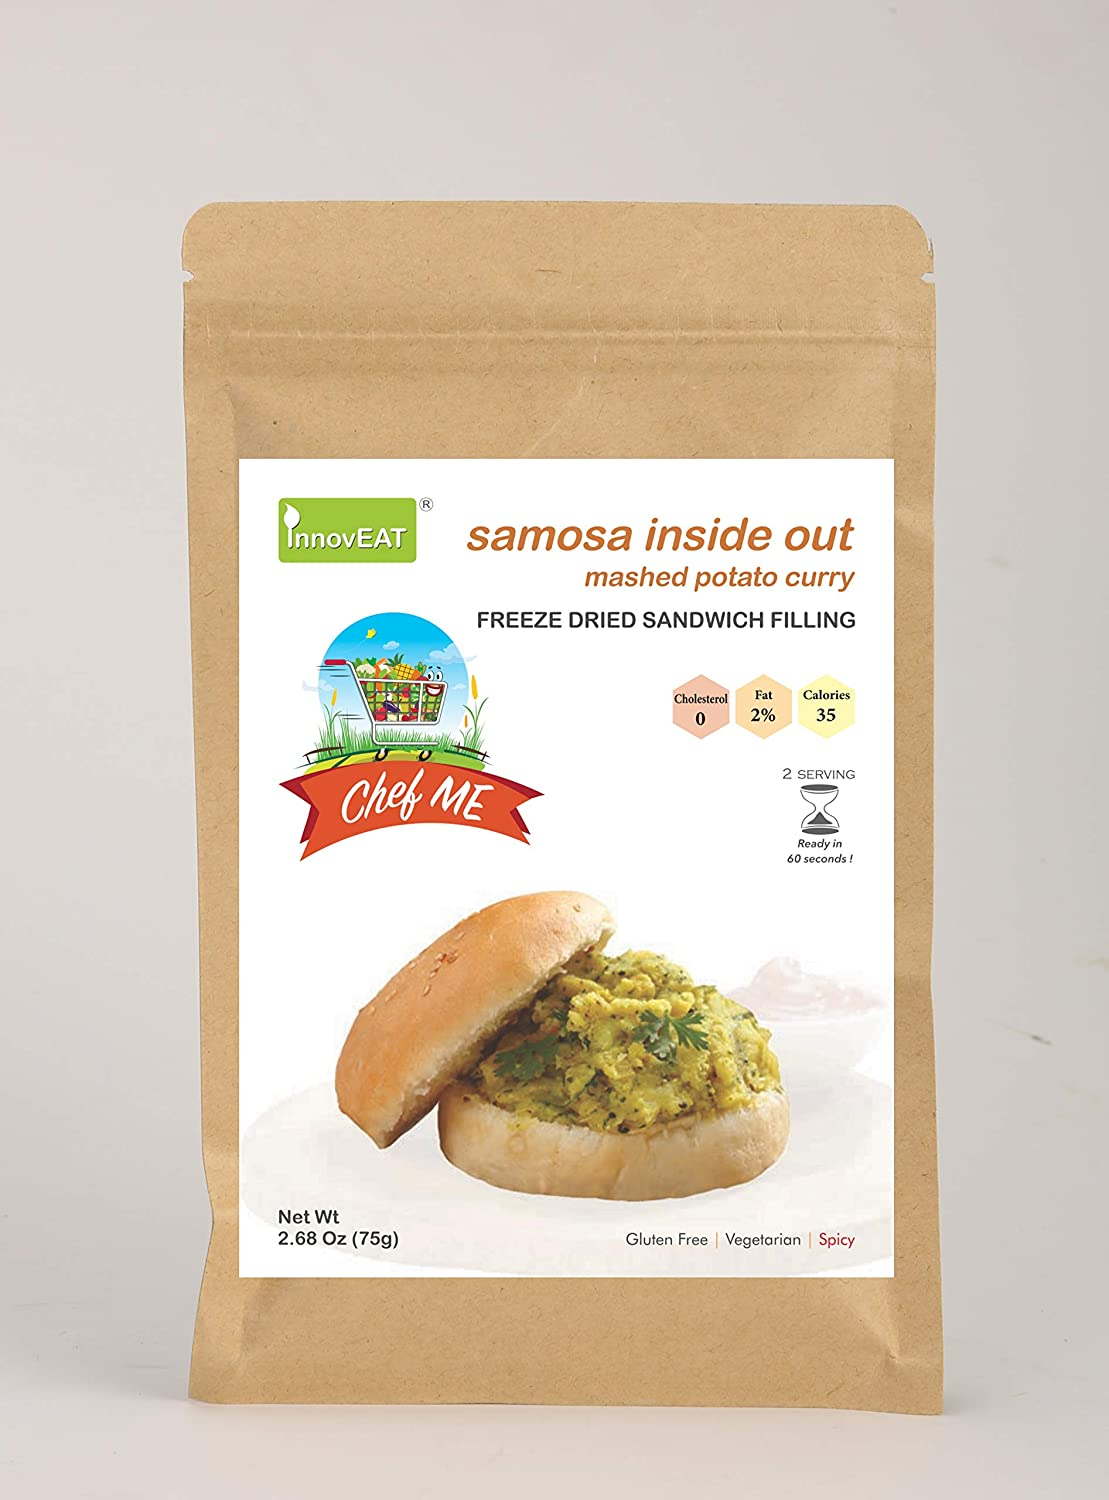 Savory Mashed Potato - Complete Free Shipping Challenge the lowest price Sandwich Filling T of Pack Samosa Flavor